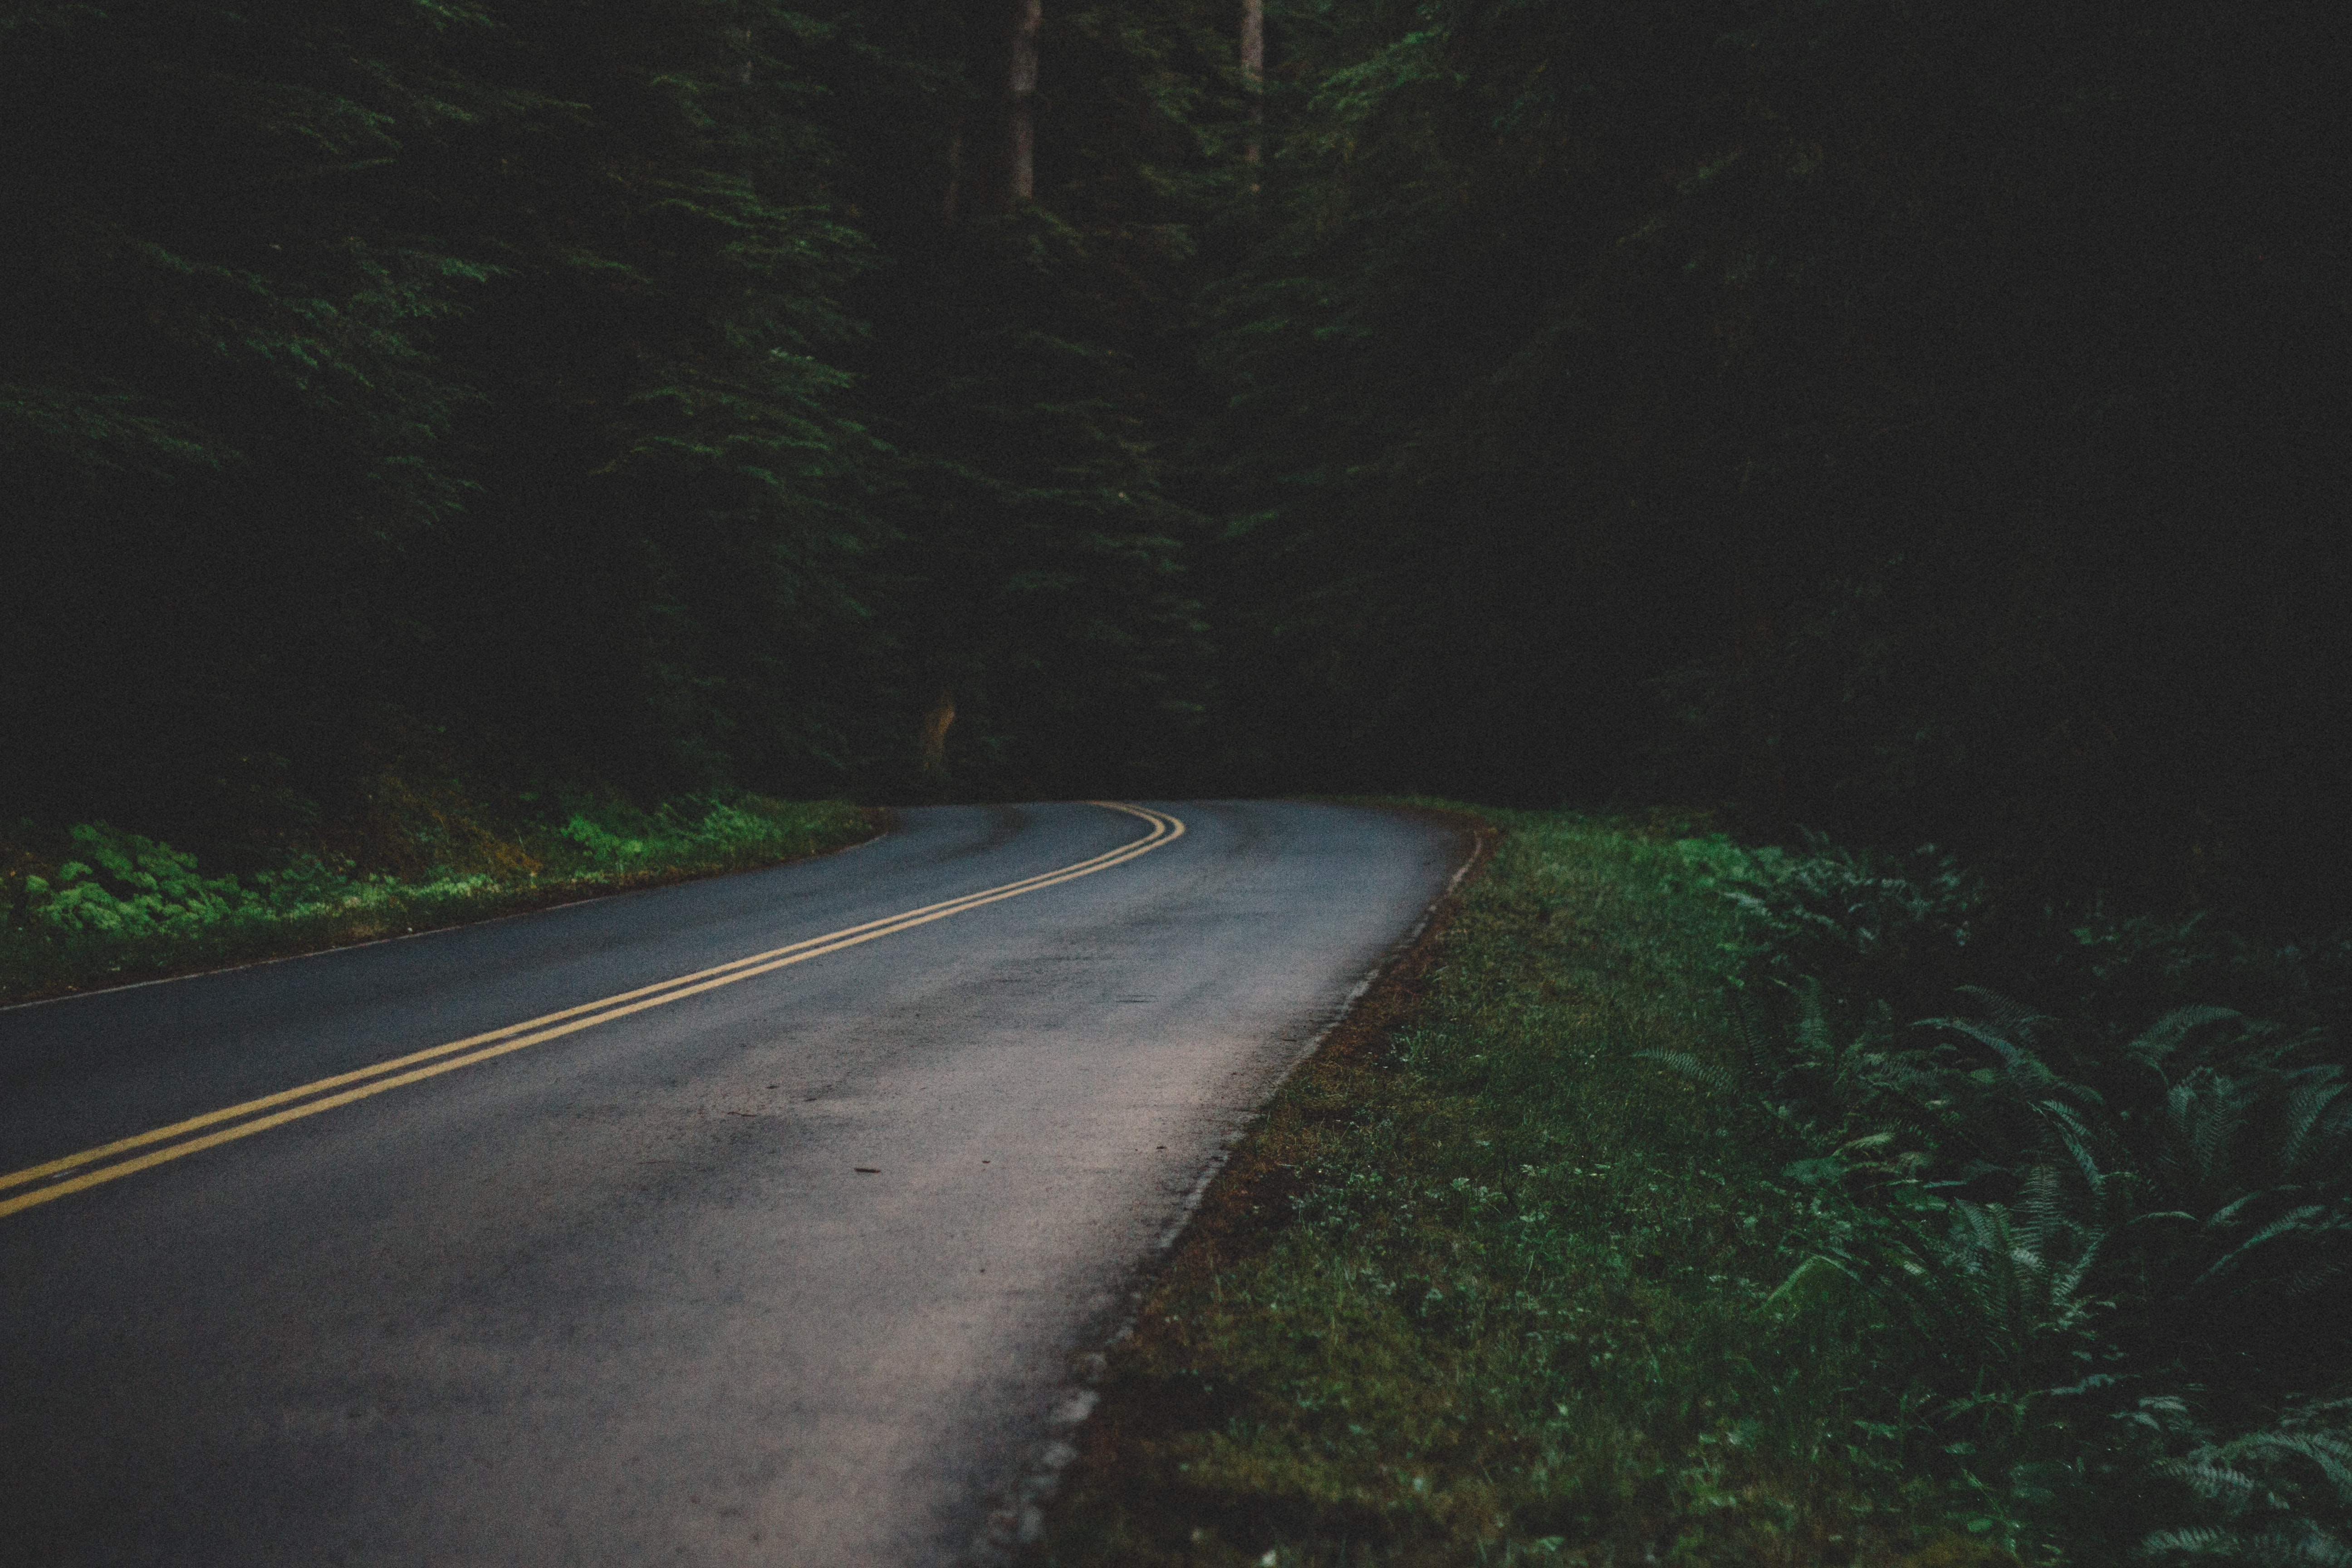 Open road winds through lush green trees in the forest